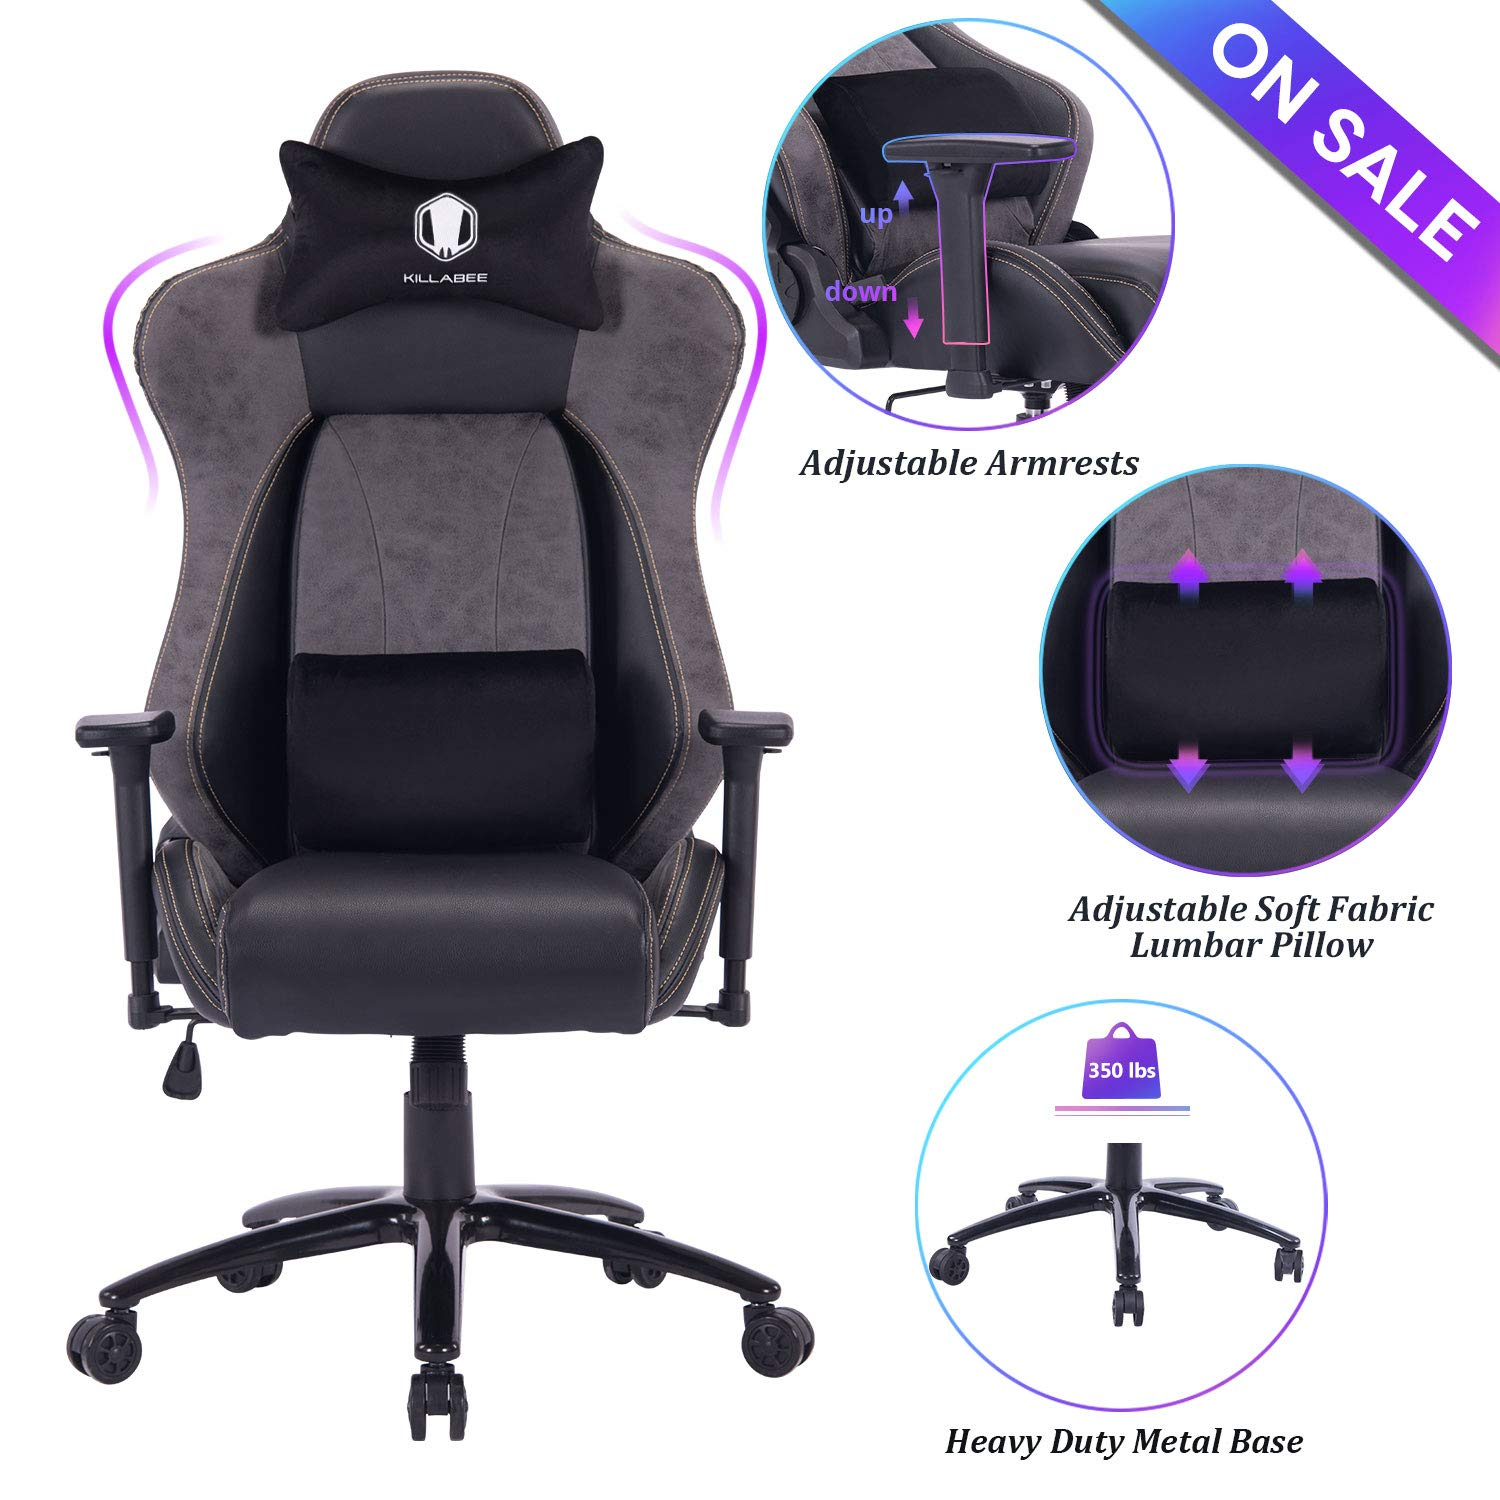 VON RACER Big and Tall Gaming Chair Racing Office Chair - Adjustable Back Angle, Soft Fabric Lumbar Support and Arms Ergonomic High-Back Leather Computer Desk Swivel Chair w/Metal Base, Black by VON RACER